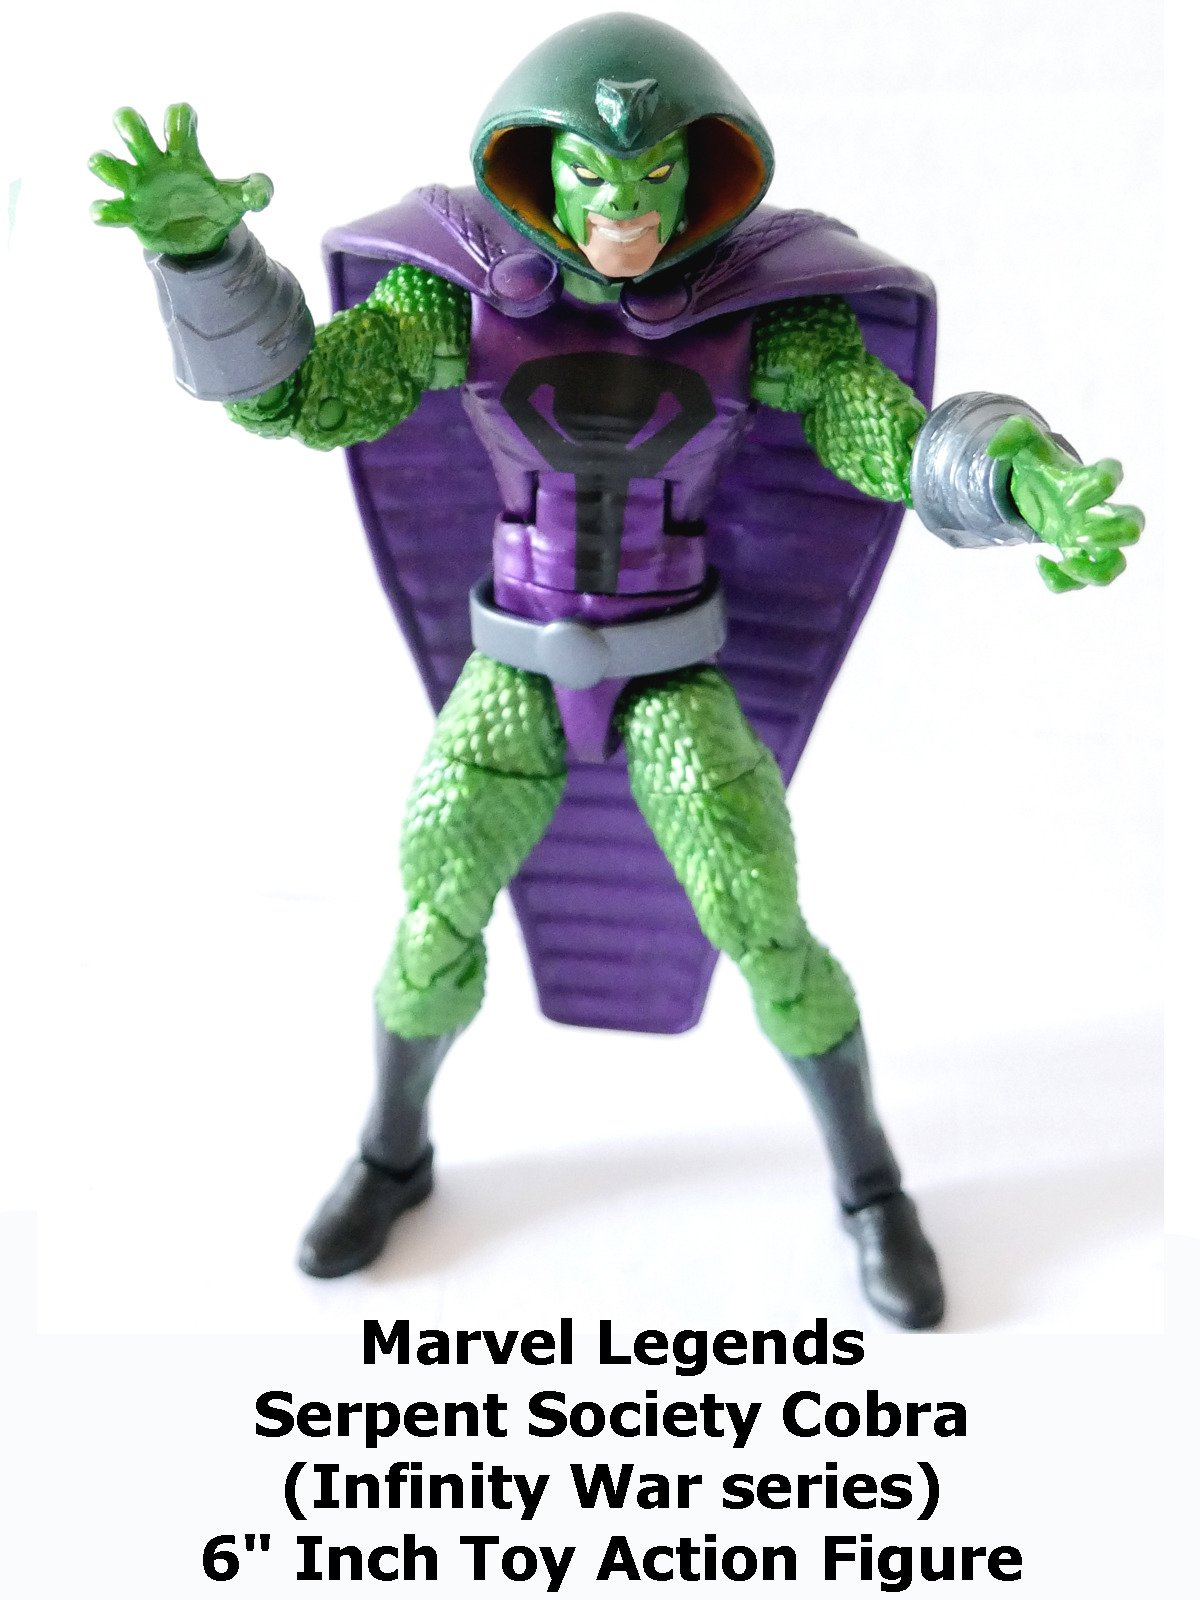 "Review: Marvel Legends Serpent Society Cobra (Infinity War series) 6"" Inch Toy Action Figure"